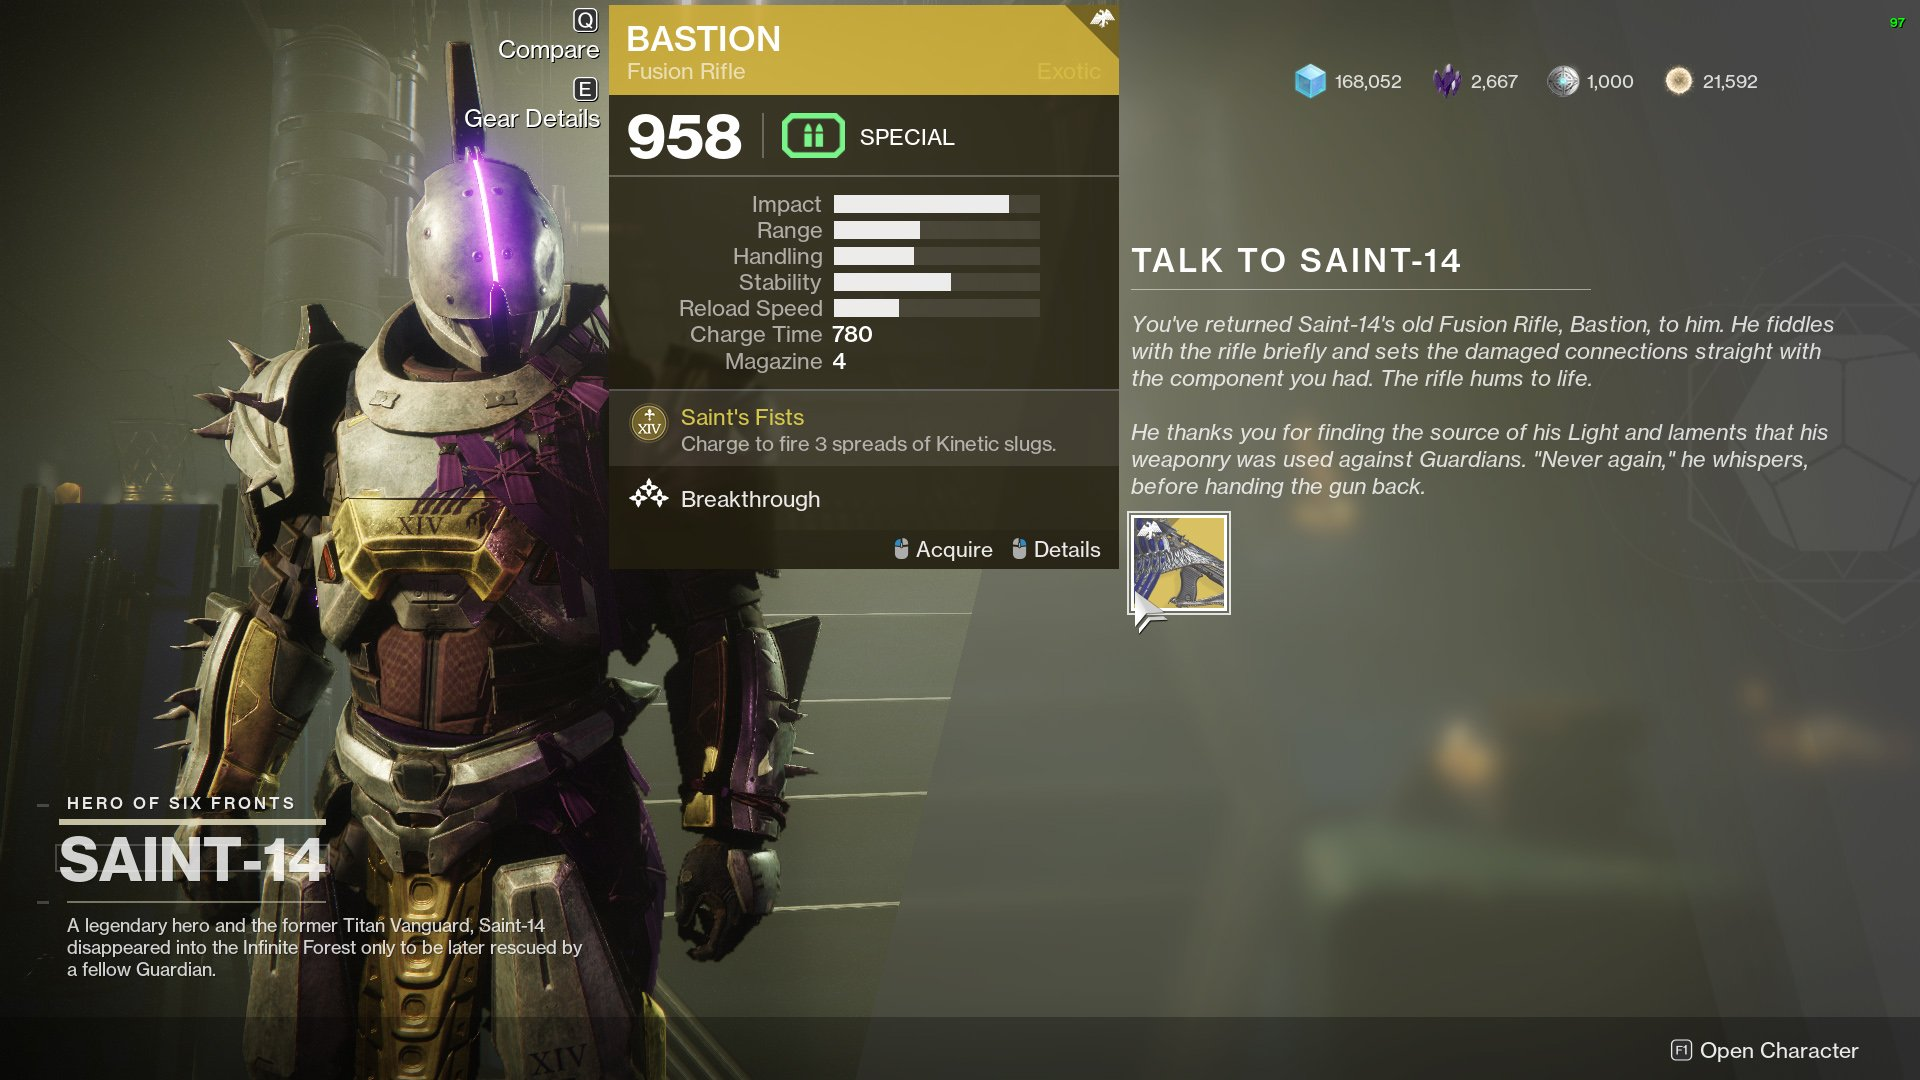 destiny 2 bastion saint-14